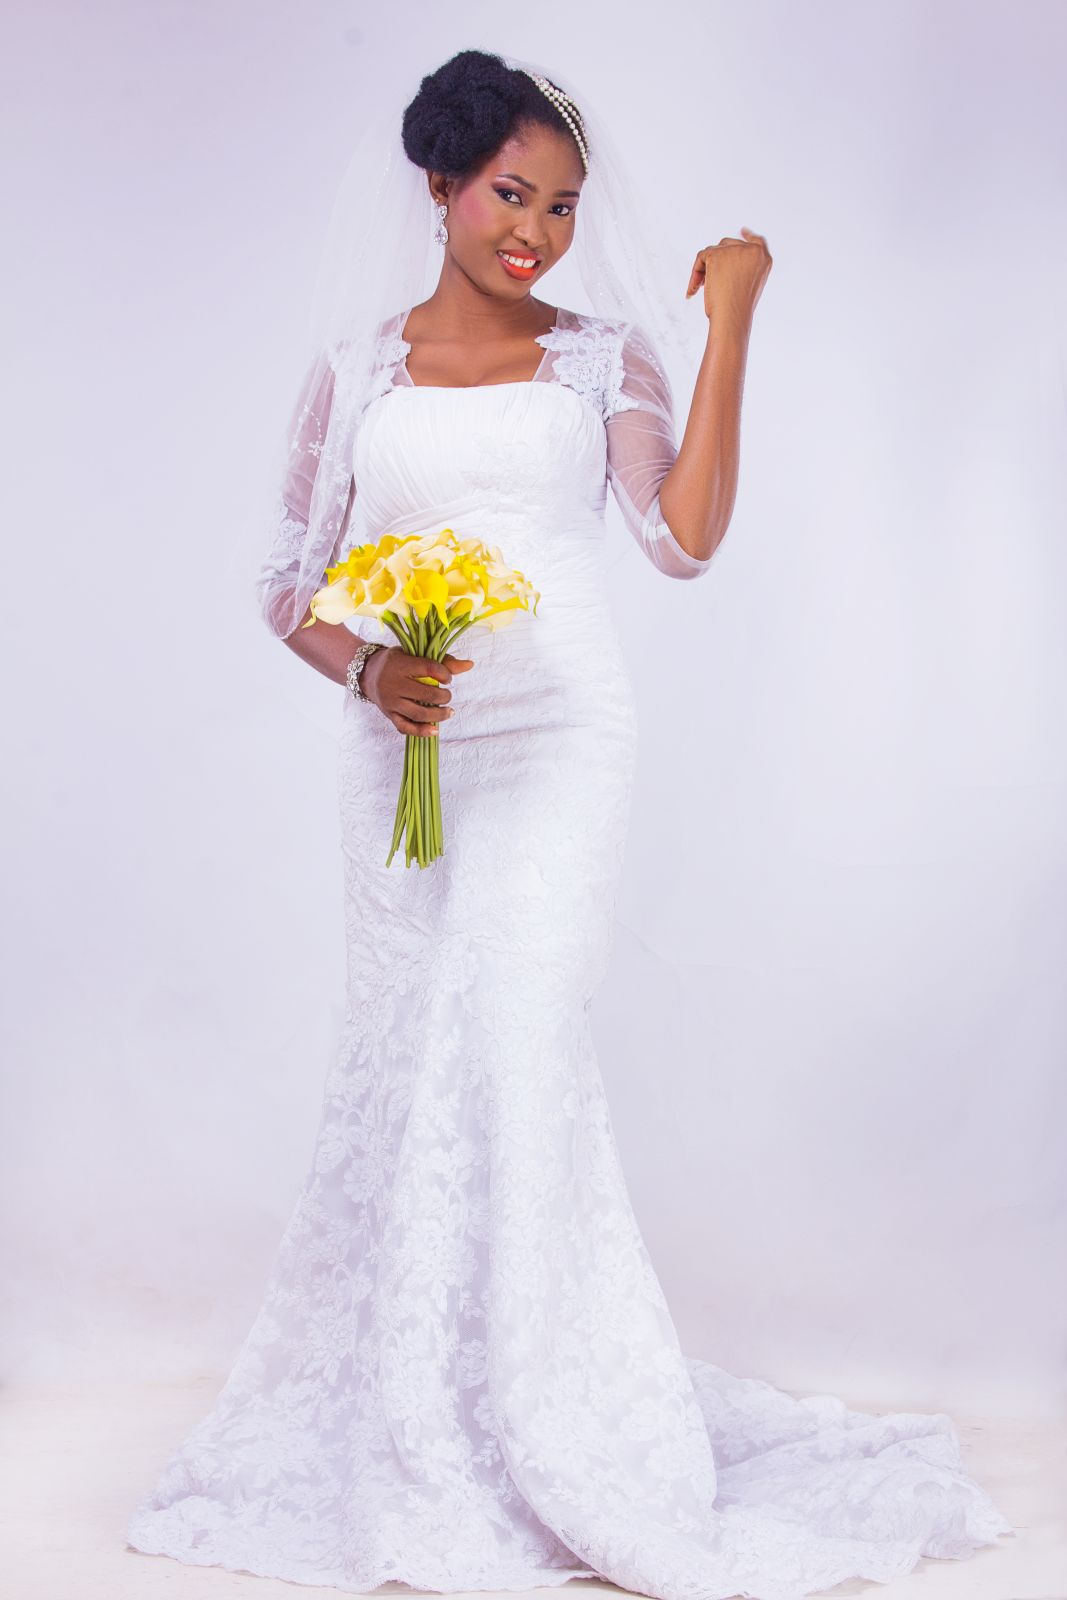 Natural Hair Bridal Inspiration - Yes I Do - BellaNaija Weddings 2015 0014